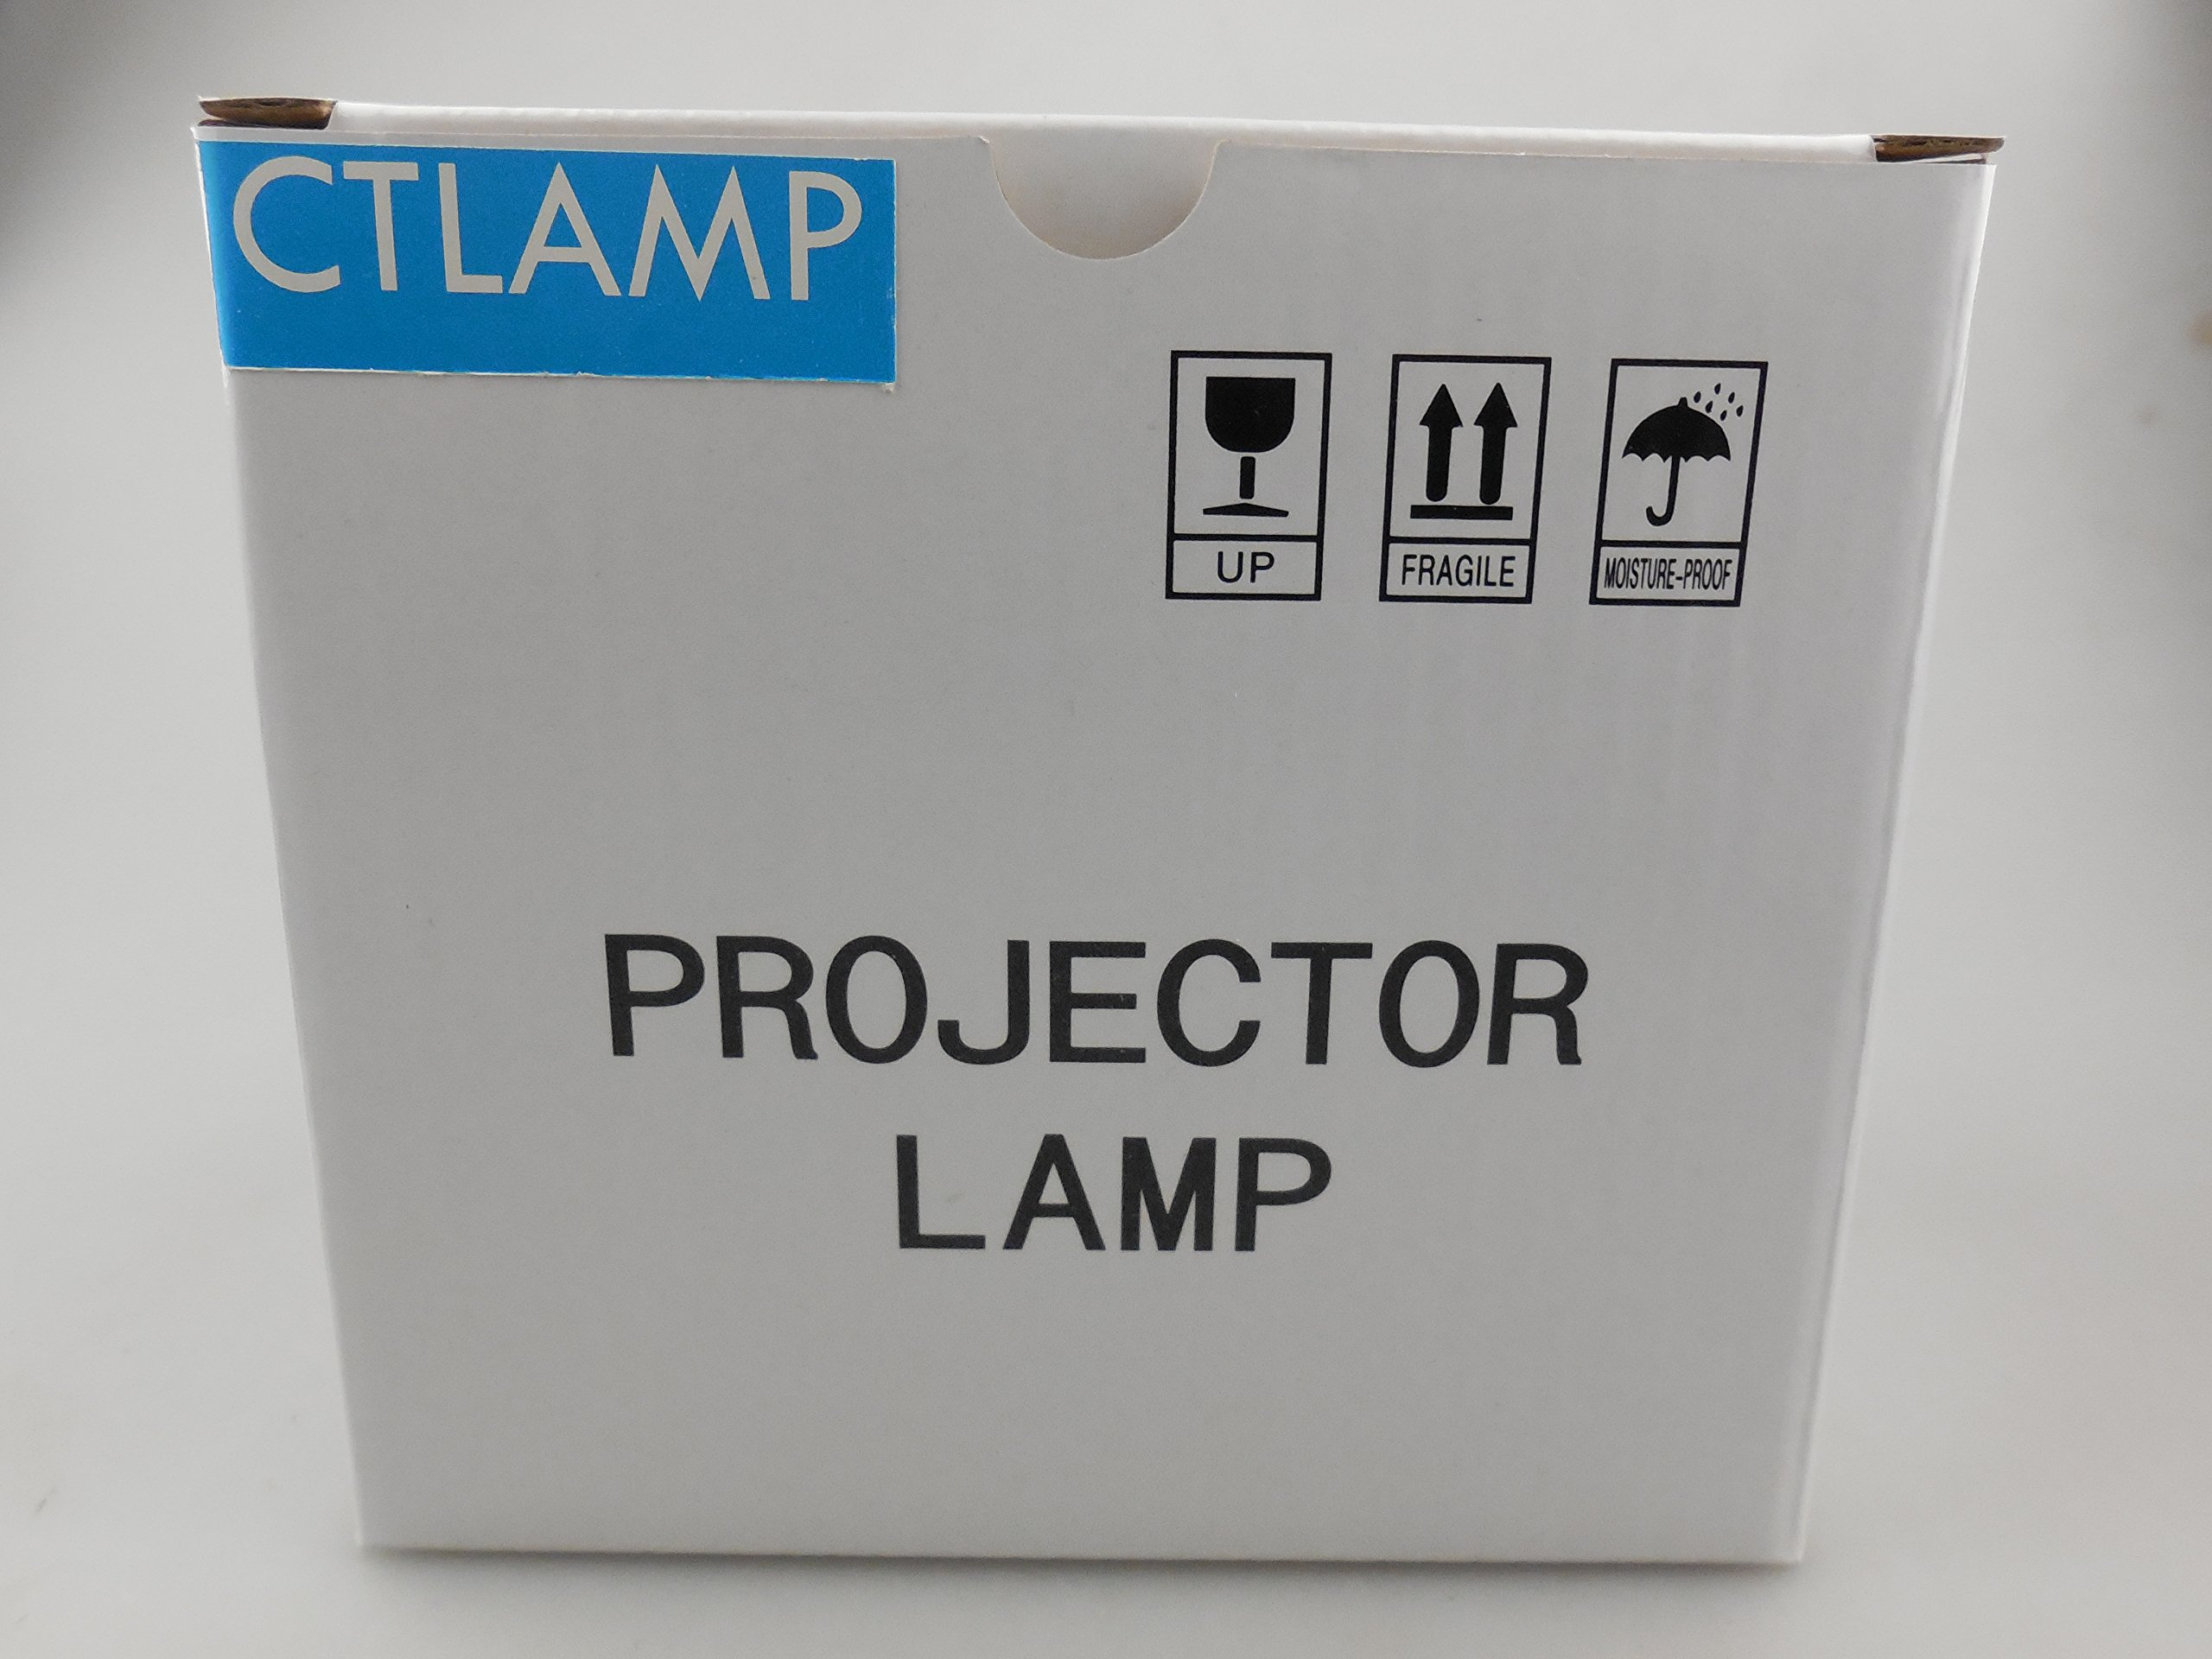 CTLAMP An-xr10lp Replacement Projector Lamp Module for Sharp Pg-mb66x/Xg-mb50x/Xr-105/Xr-10s/Xr-10x/Xr-11xc/Xr-hb007/Xr-10xa/Xr-hb007x